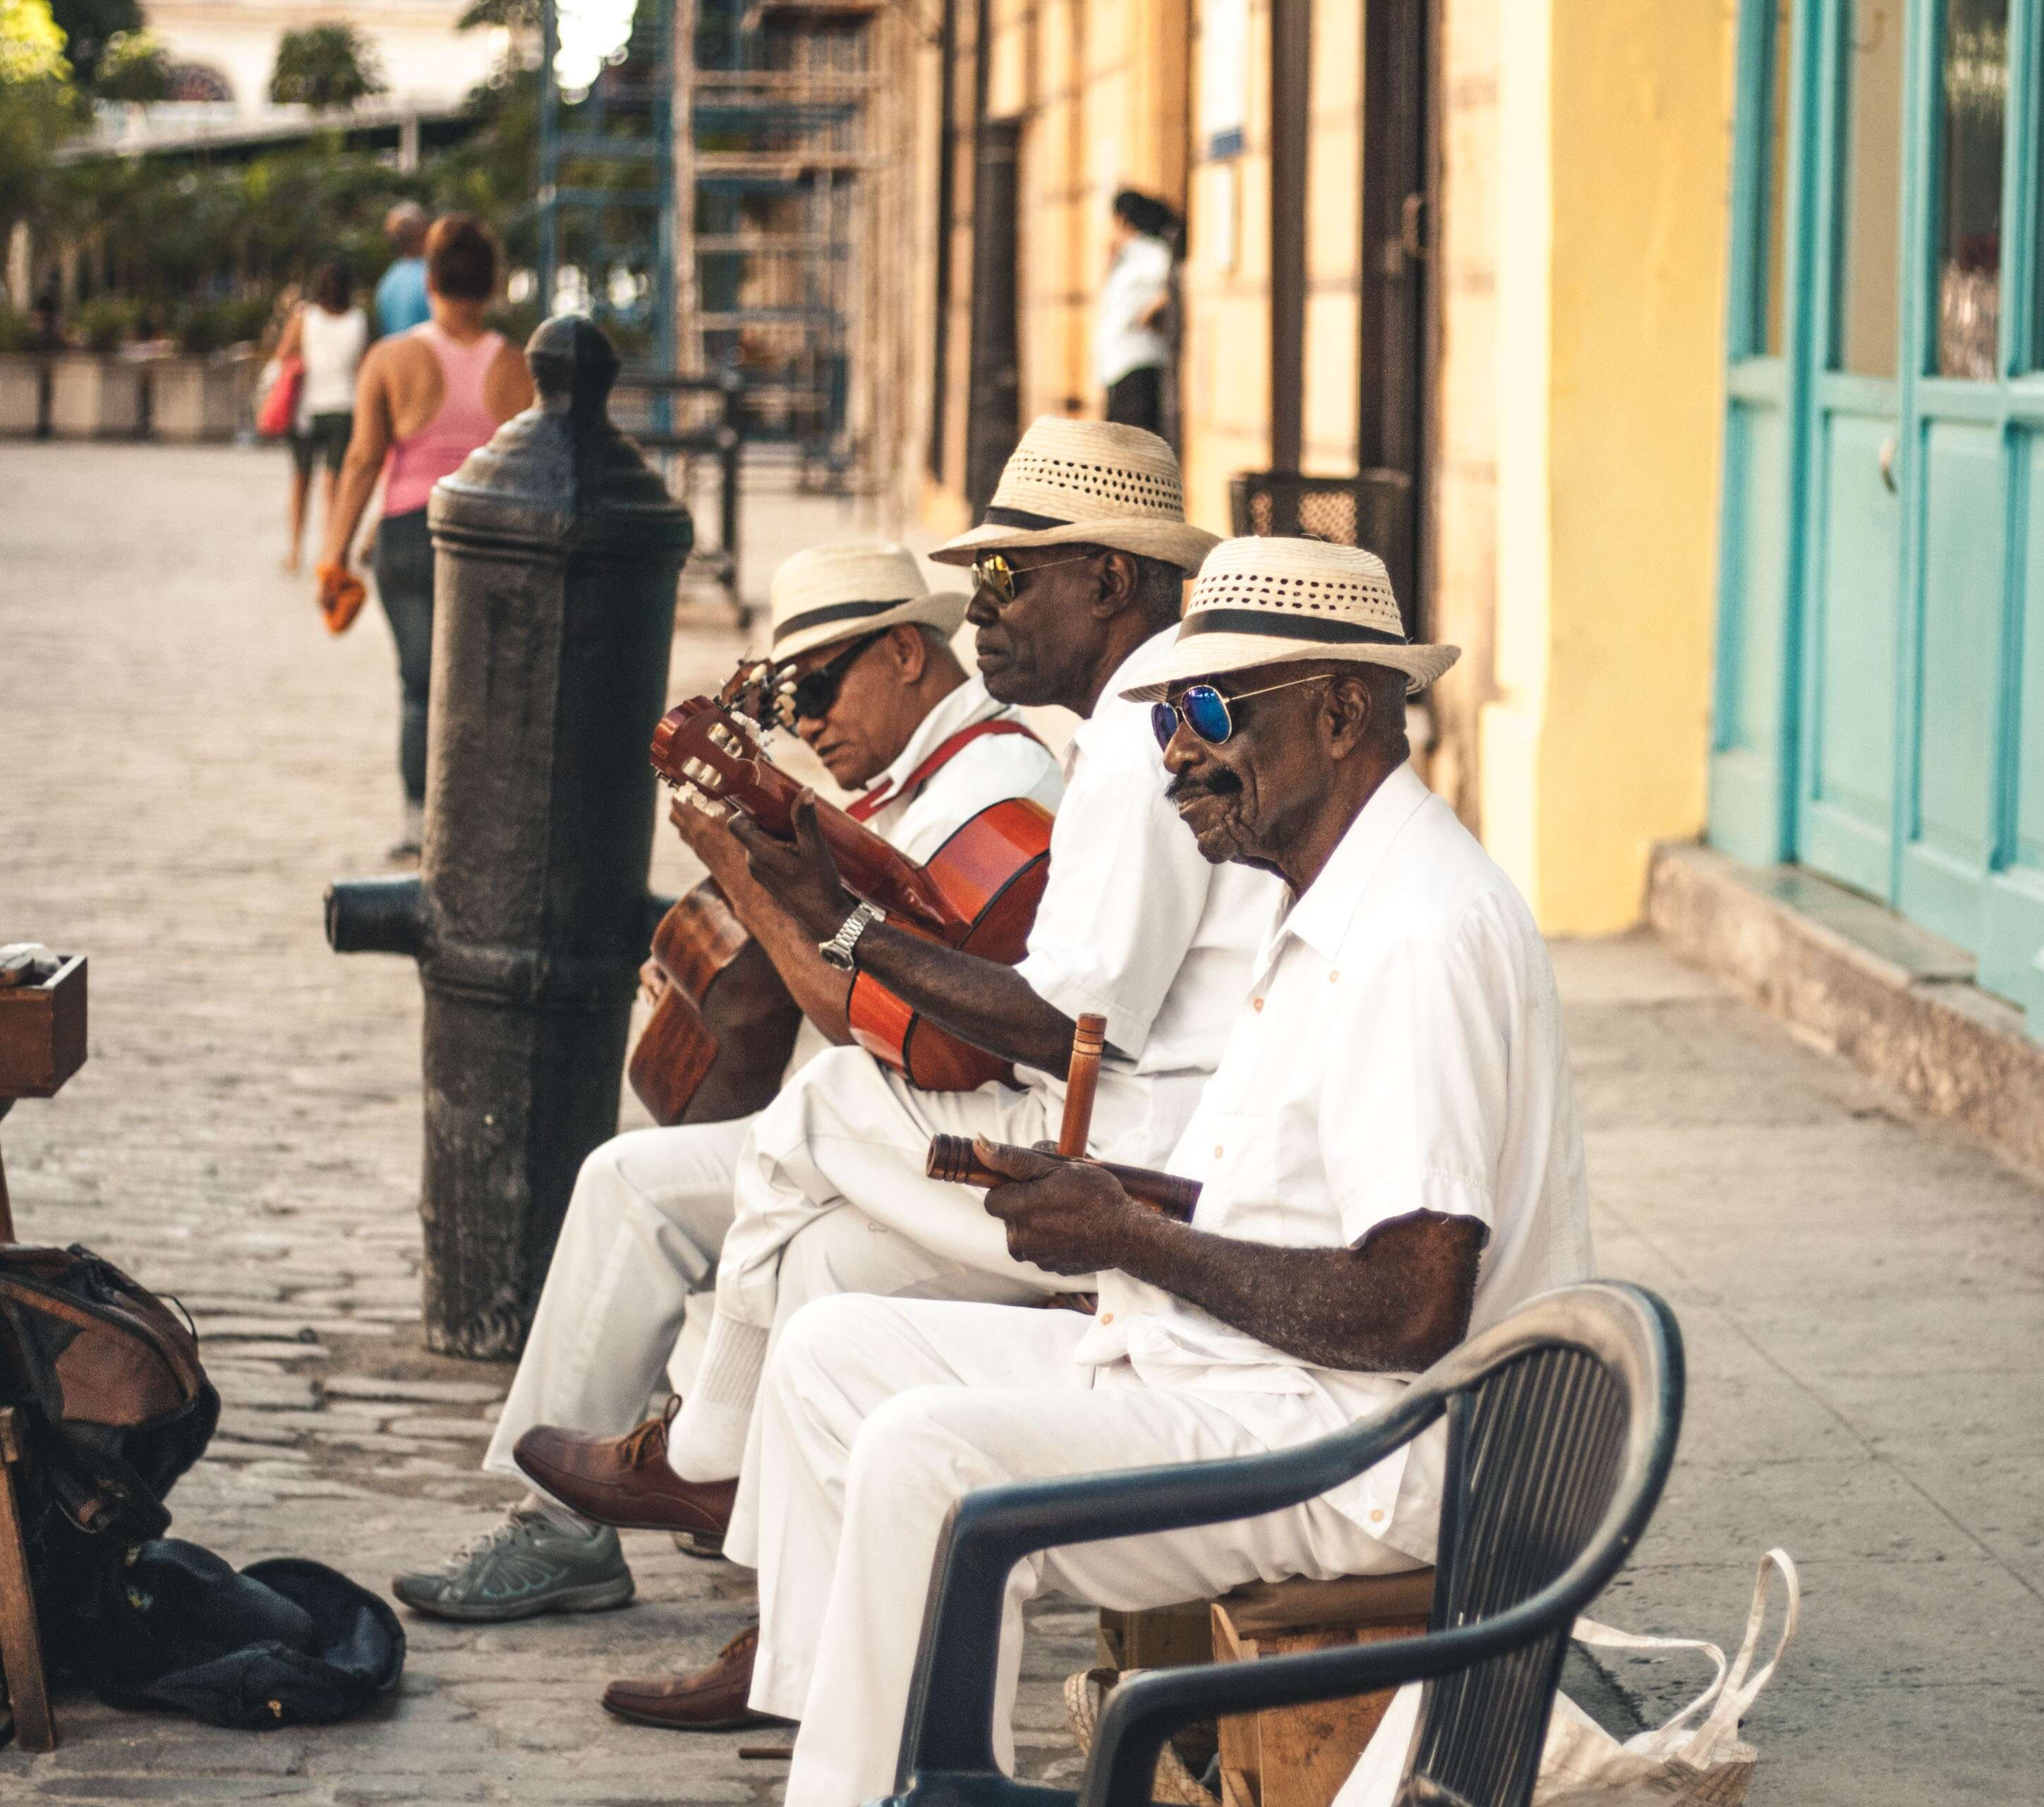 Western Cuba Tour – The Heart of Cuba including Havana